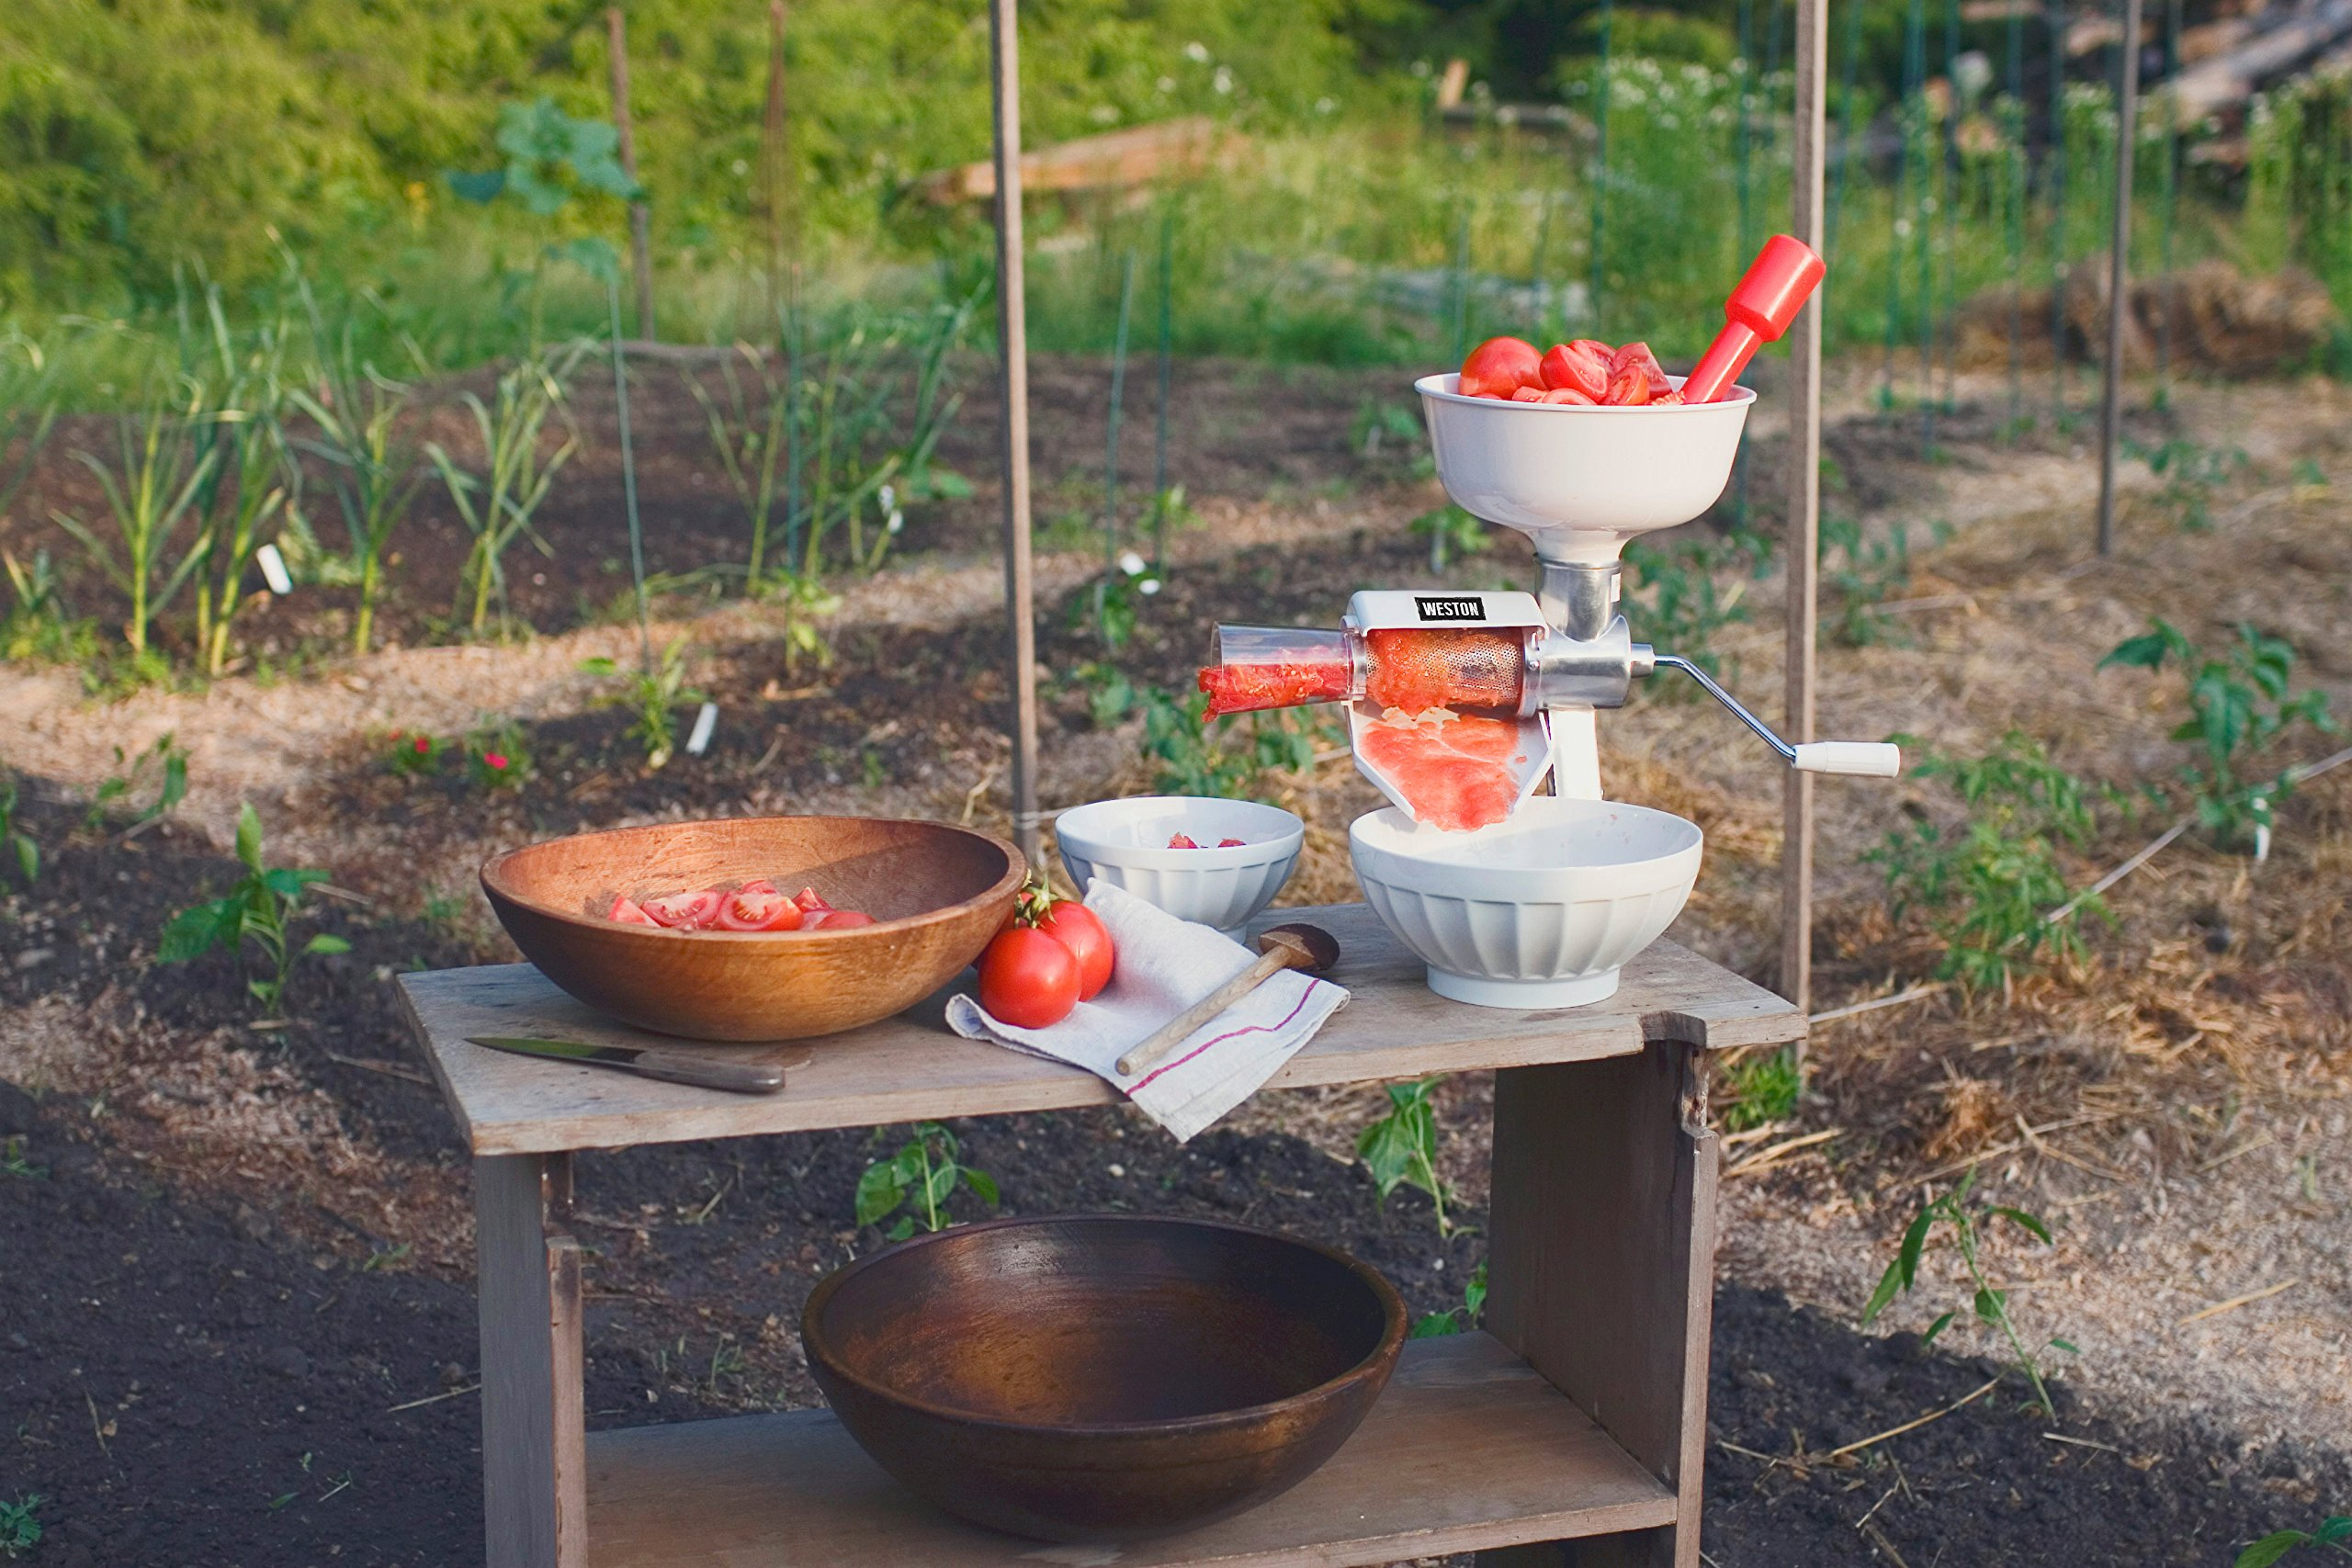 Weston Food Strainer and Sauce Maker for Tomato, Fresh Fruits and Vegetables (07-0801) by Weston (Image #4)